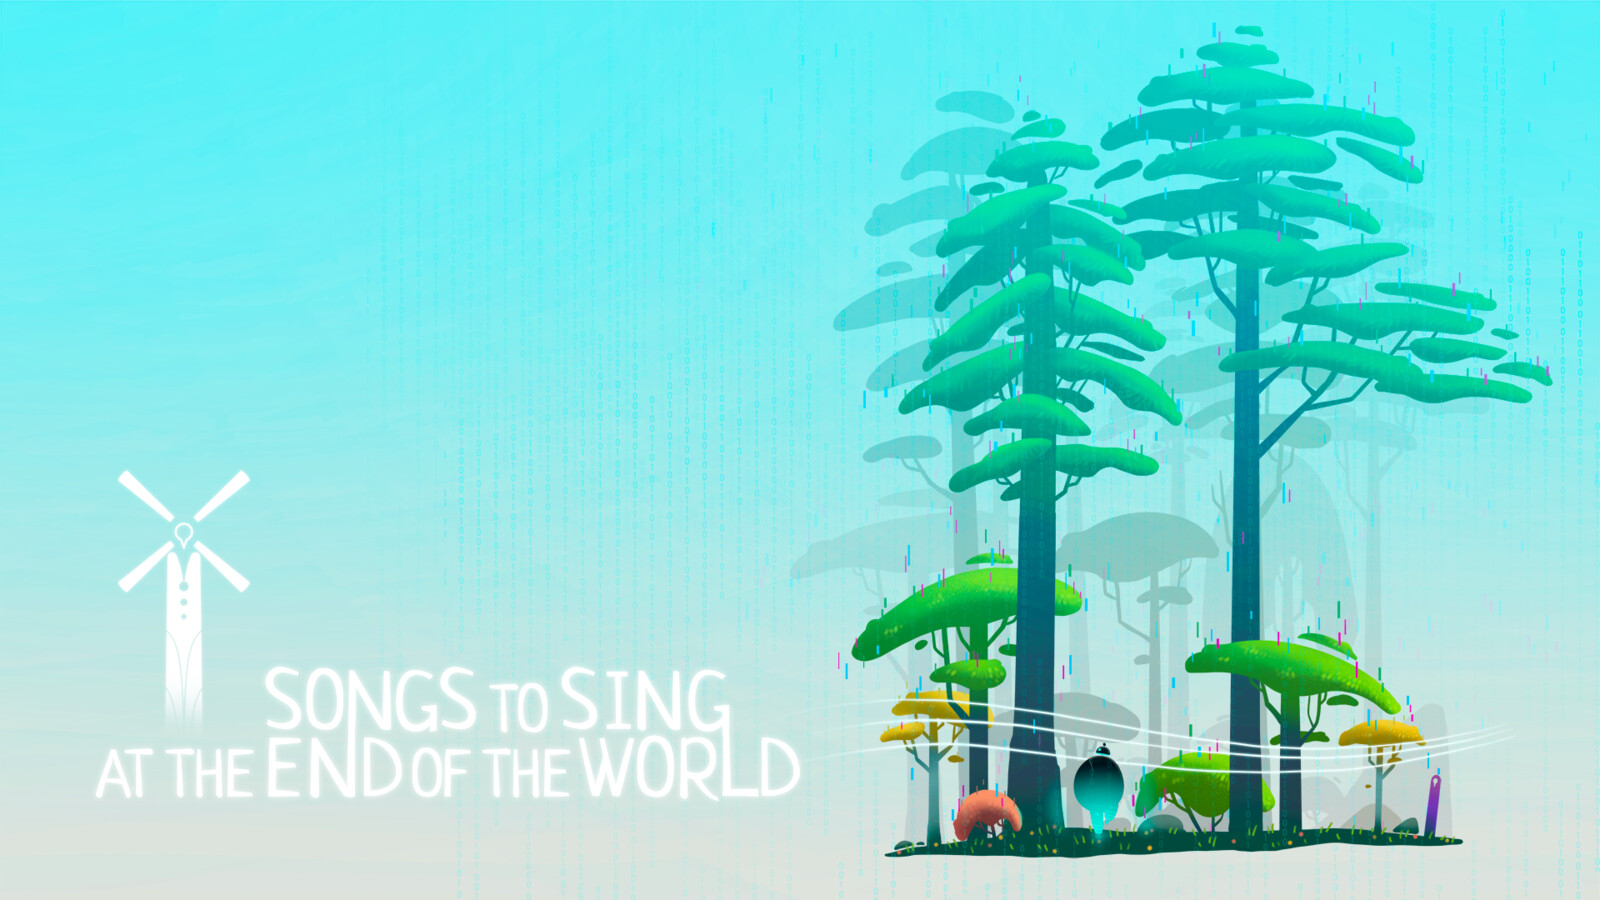 Game Development - Songs to Sing at the End of the World